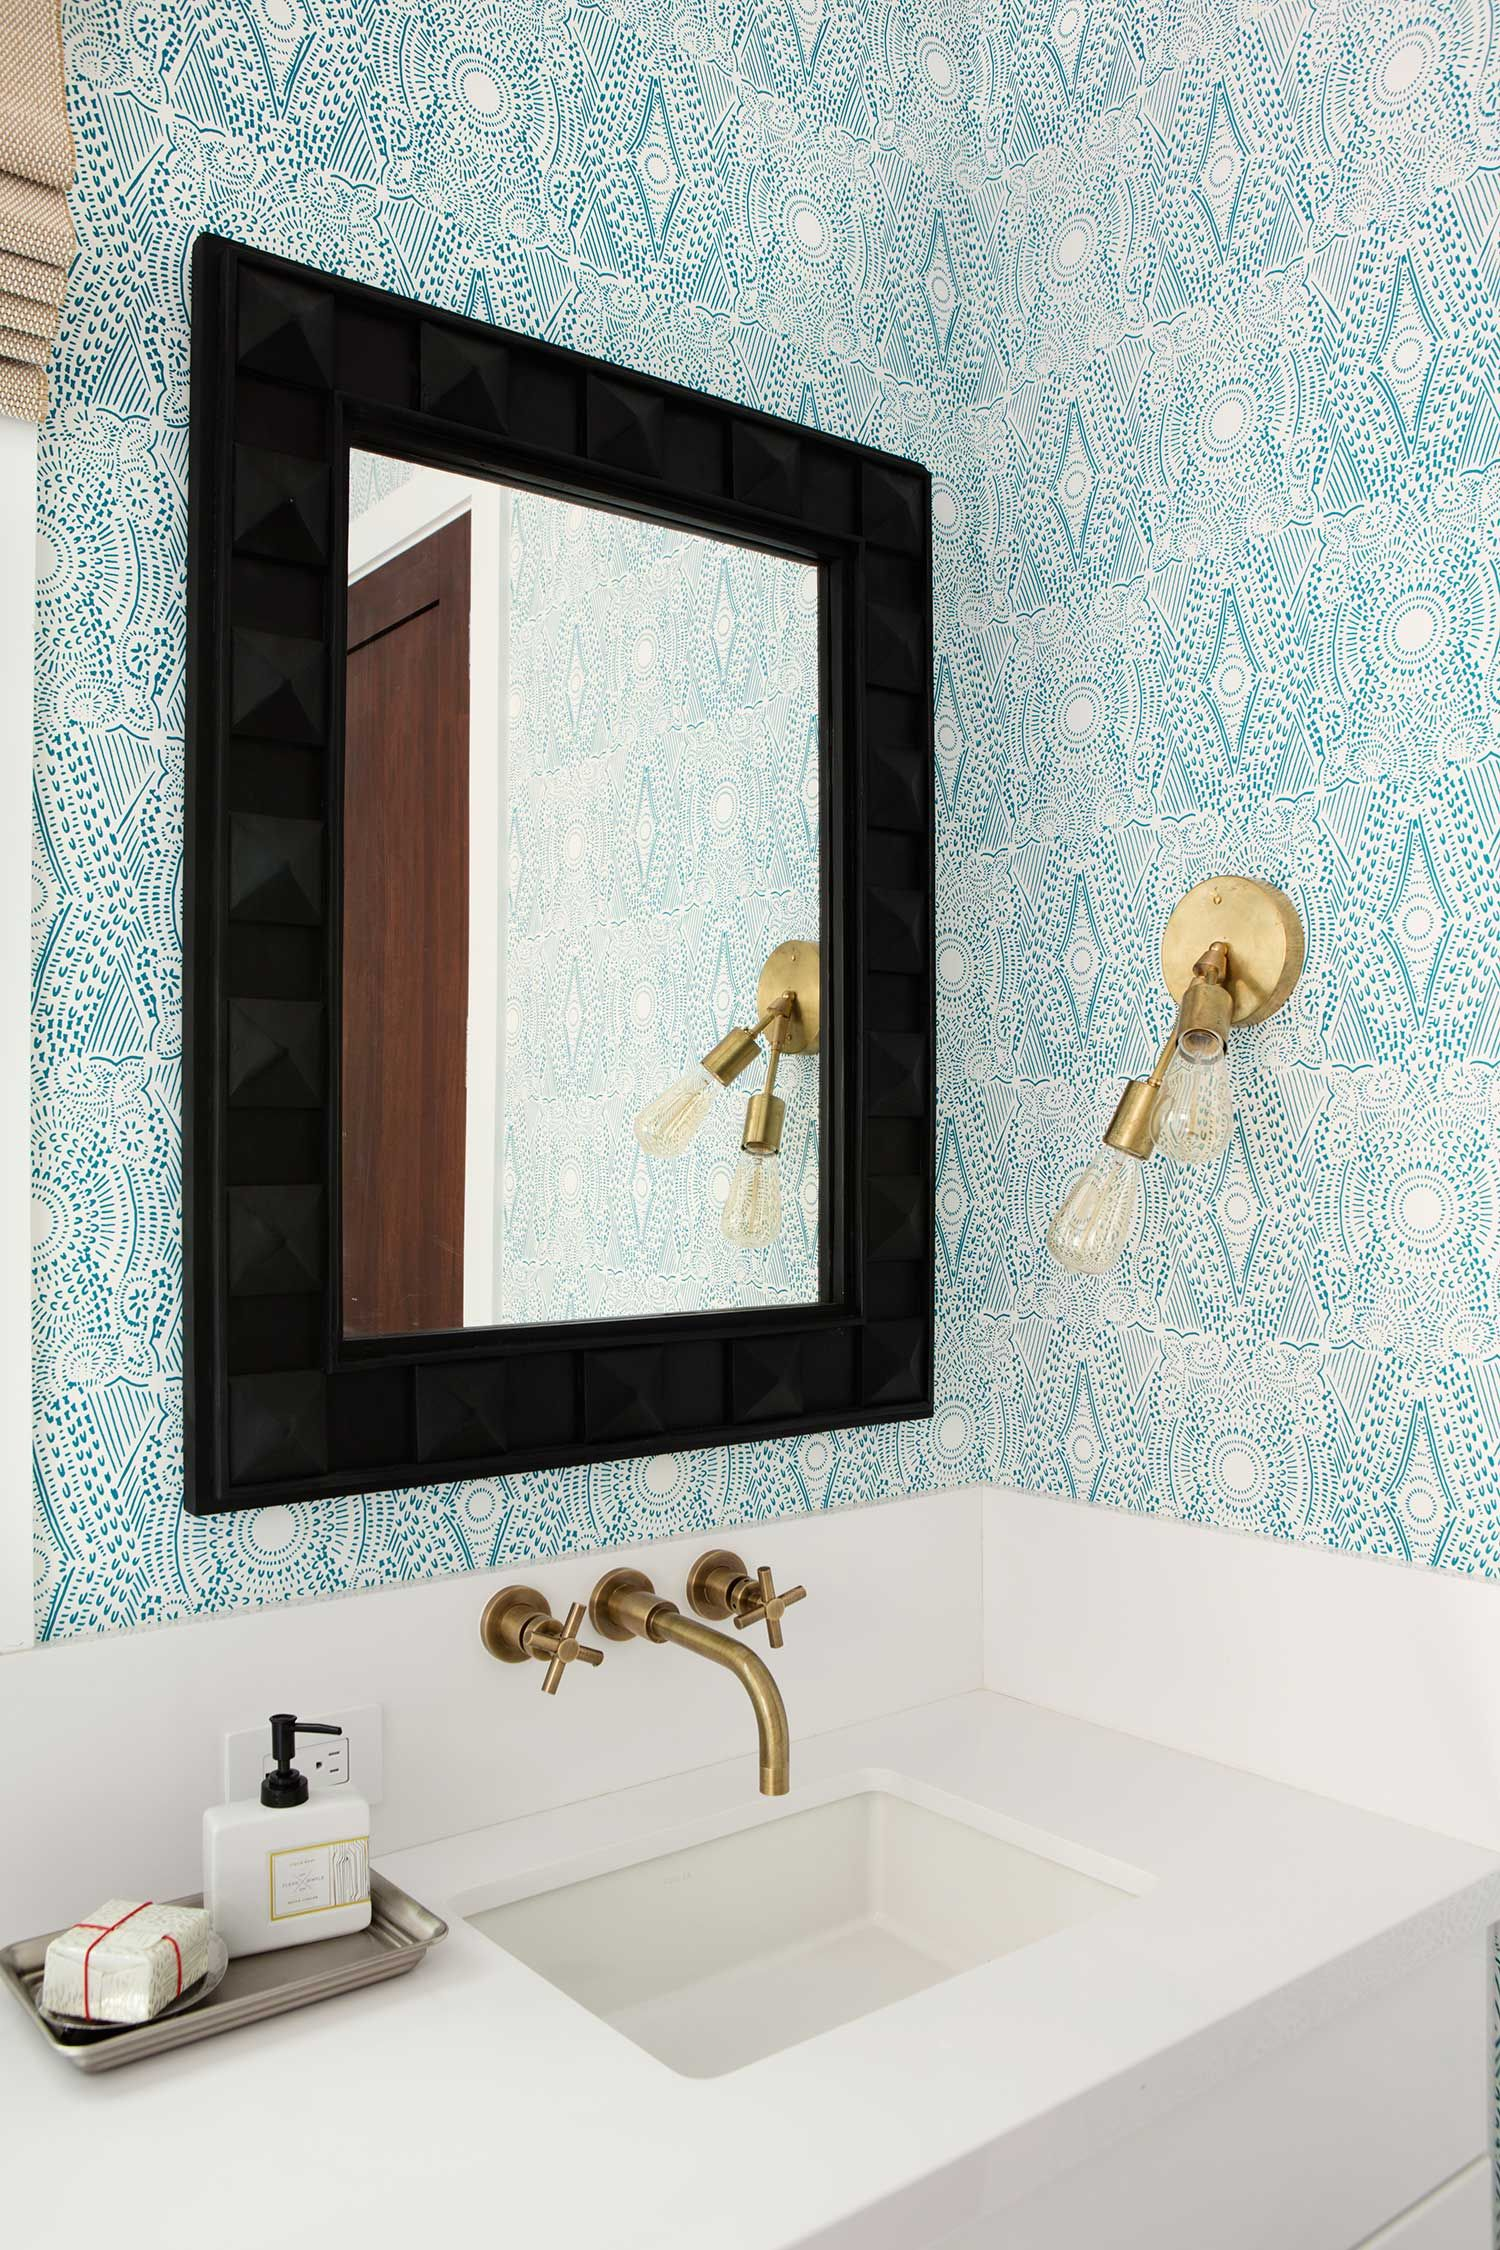 Gold And Blue Powder Room With Black Prism Mirror